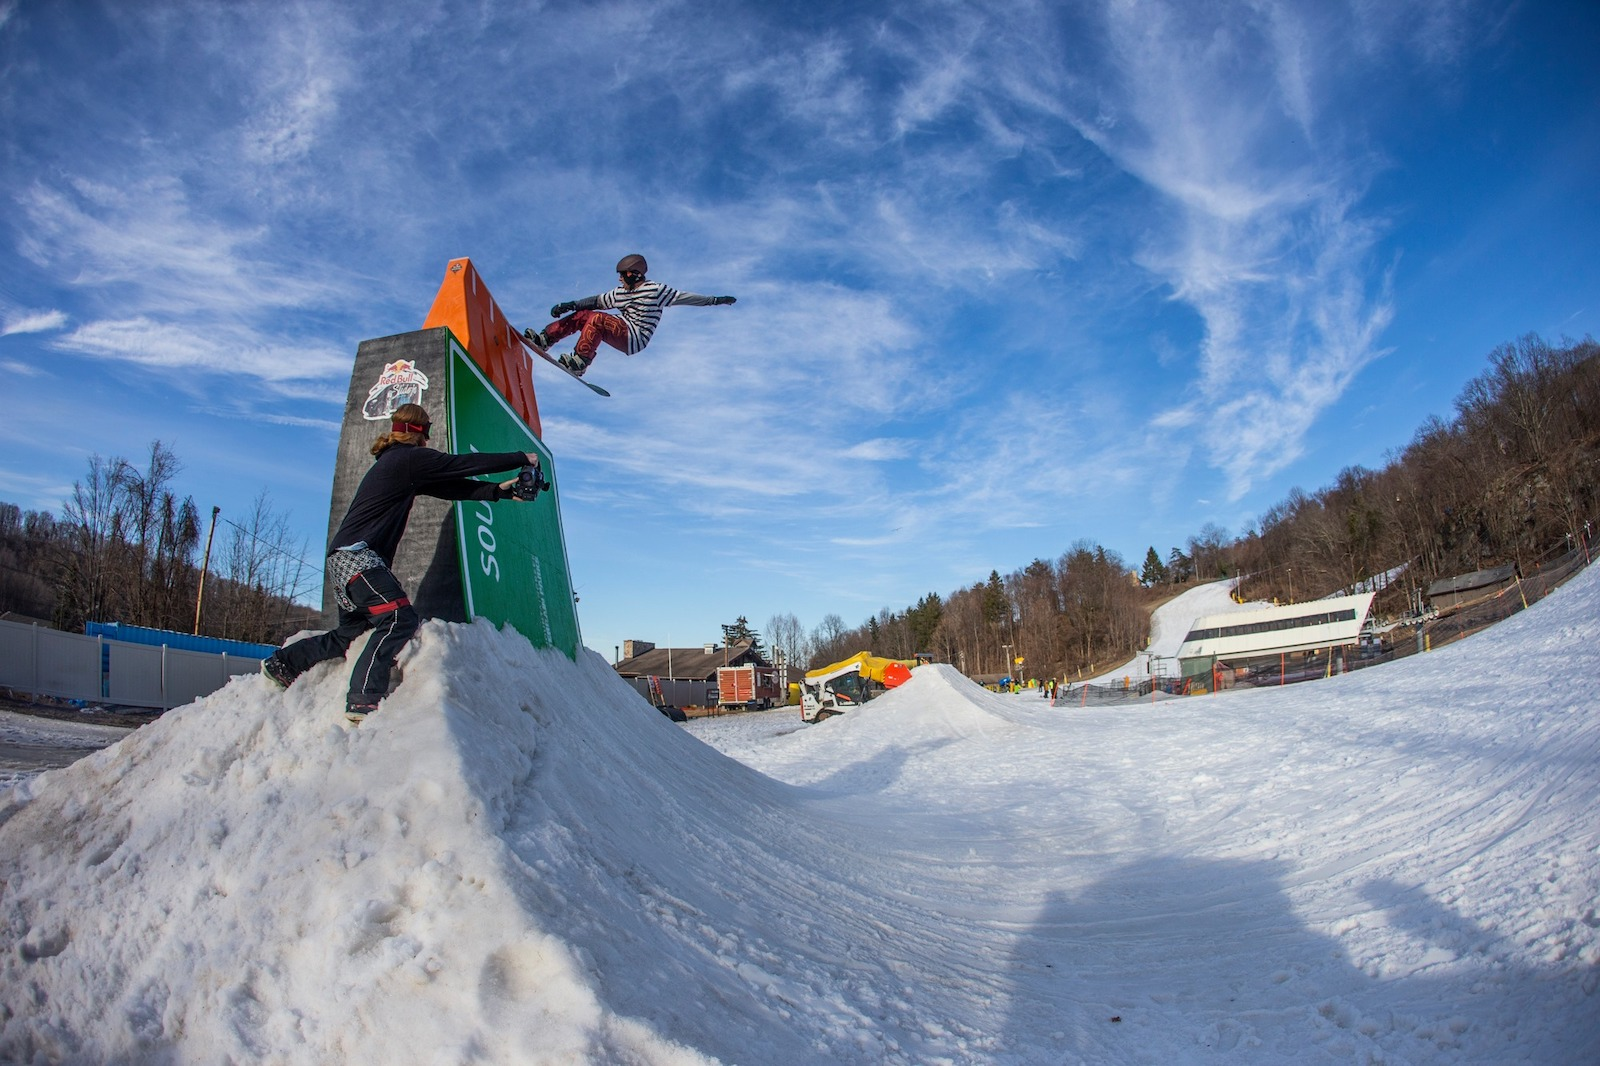 Image of snowboarder catching air at the terrain park at Mountain Creek in New Jersey